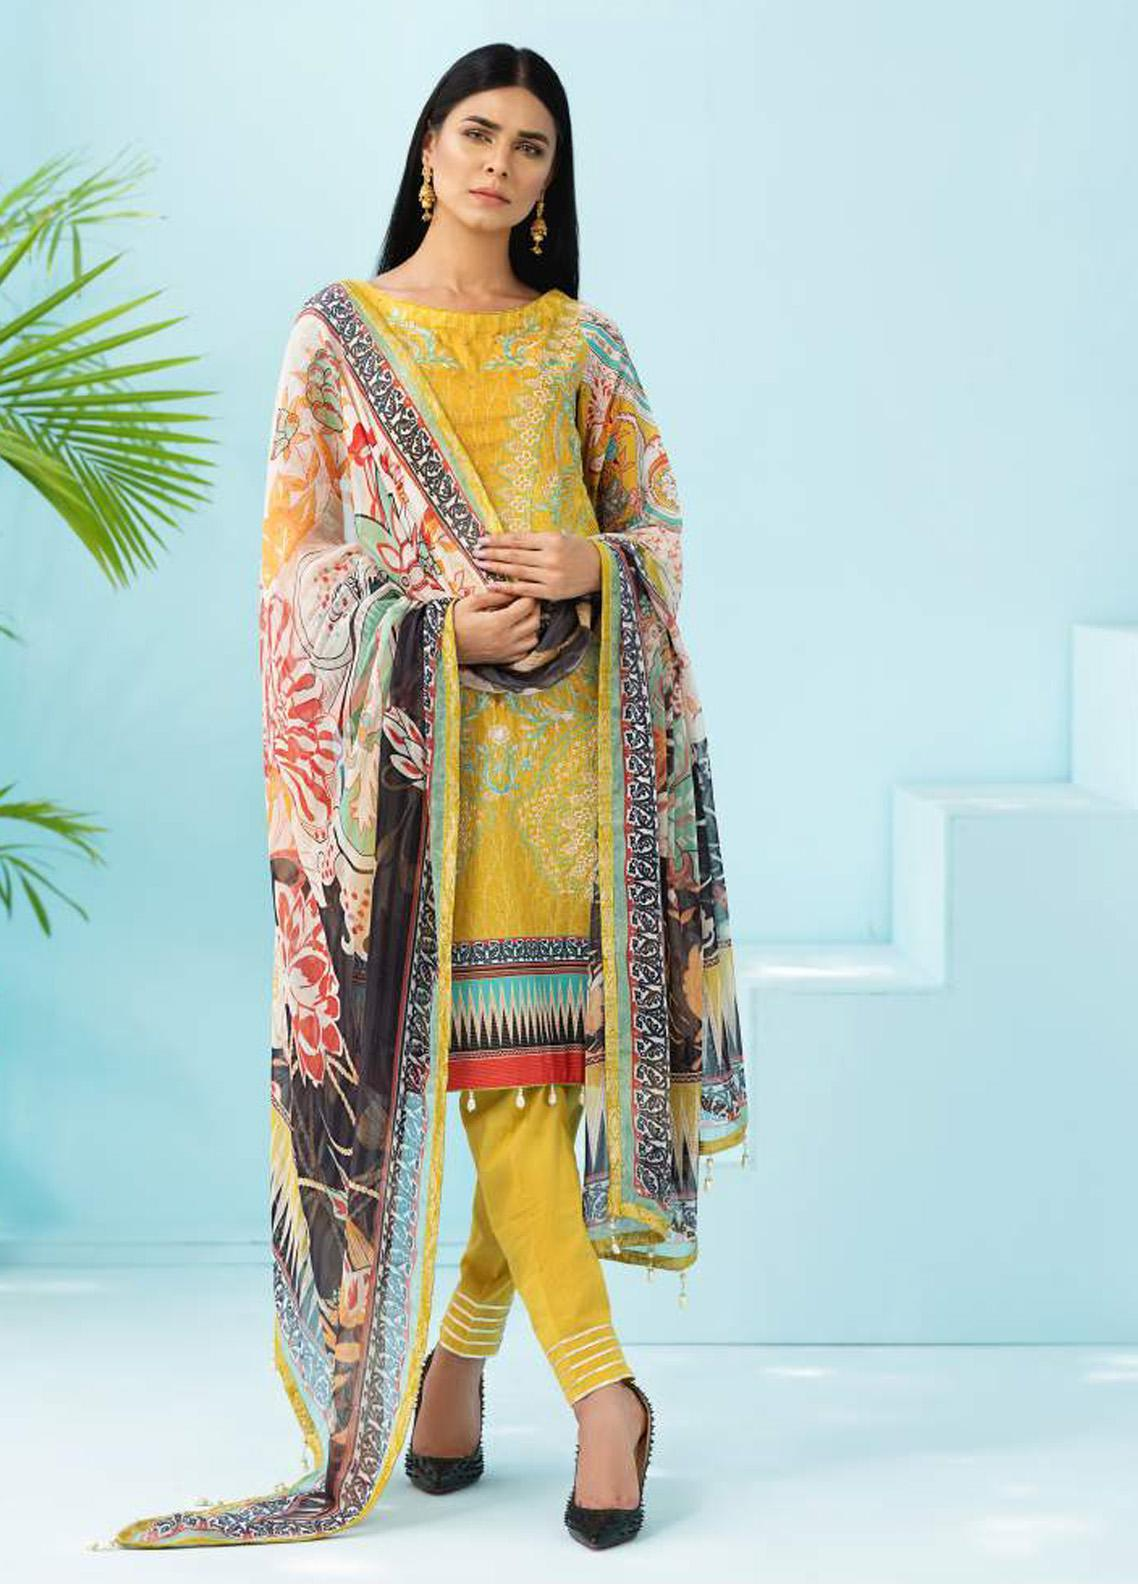 Florence by Rang Rasiya Embroidered Lawn Unstitched 3 Piece Suit RR20SF F549 - Spring / Summer Collection